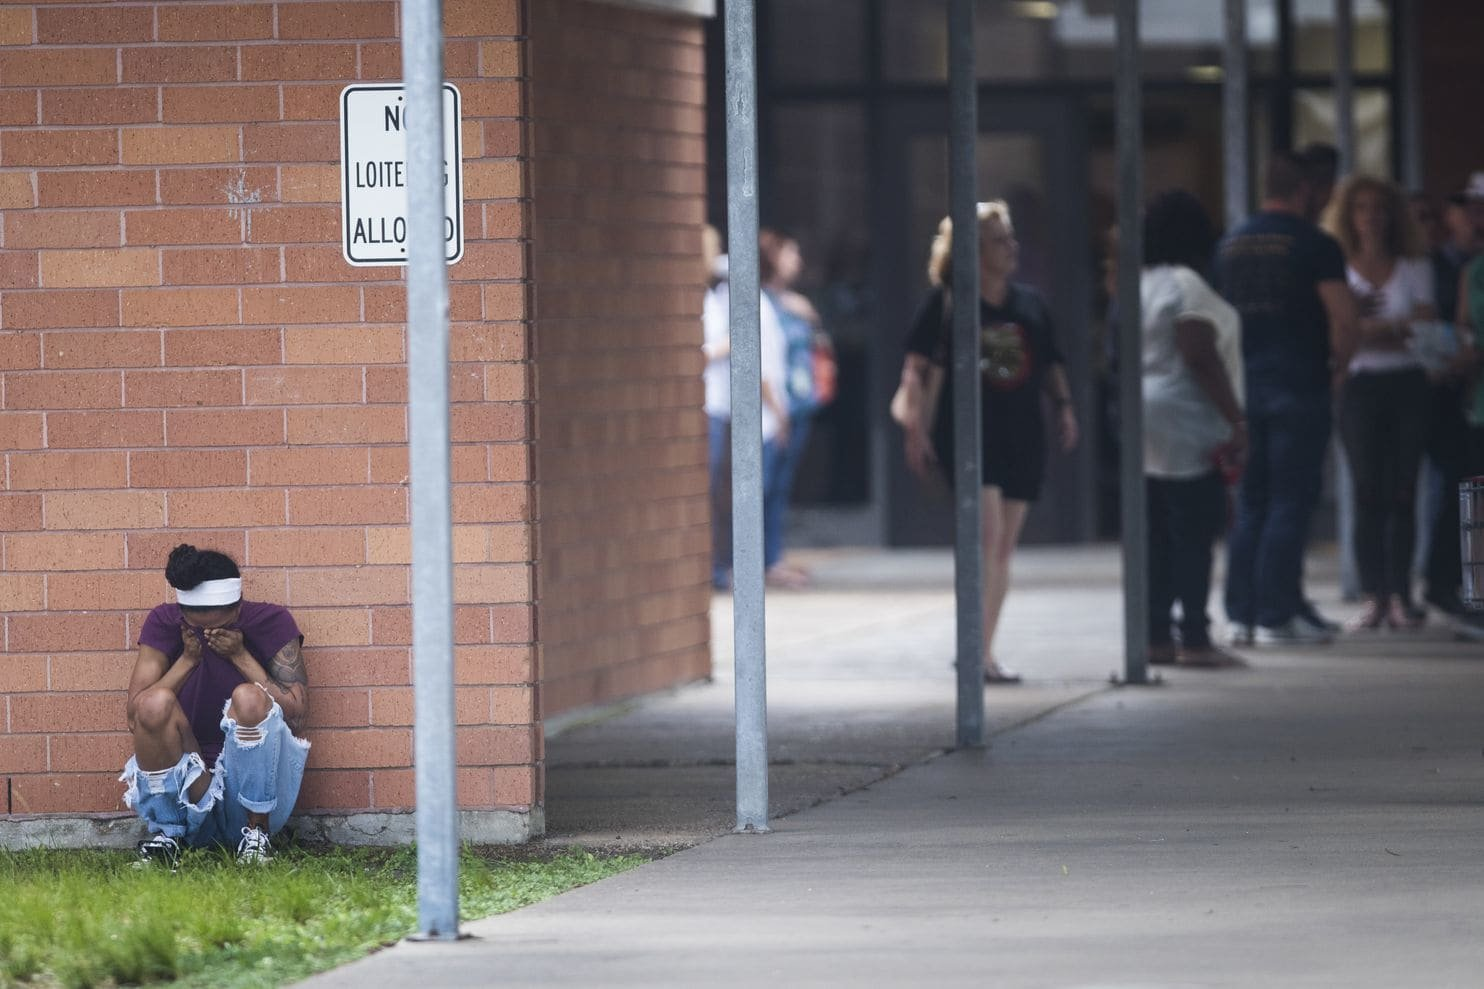 People gather by the Barnett Intermediate School where parents are gathering to pick up their children following a shooting at Santa Fe High School Friday, May 18, 2018, in Santa Fe, Texas. (Marie D. De Jesus/Houston Chronicle via AP) (Associated Press)